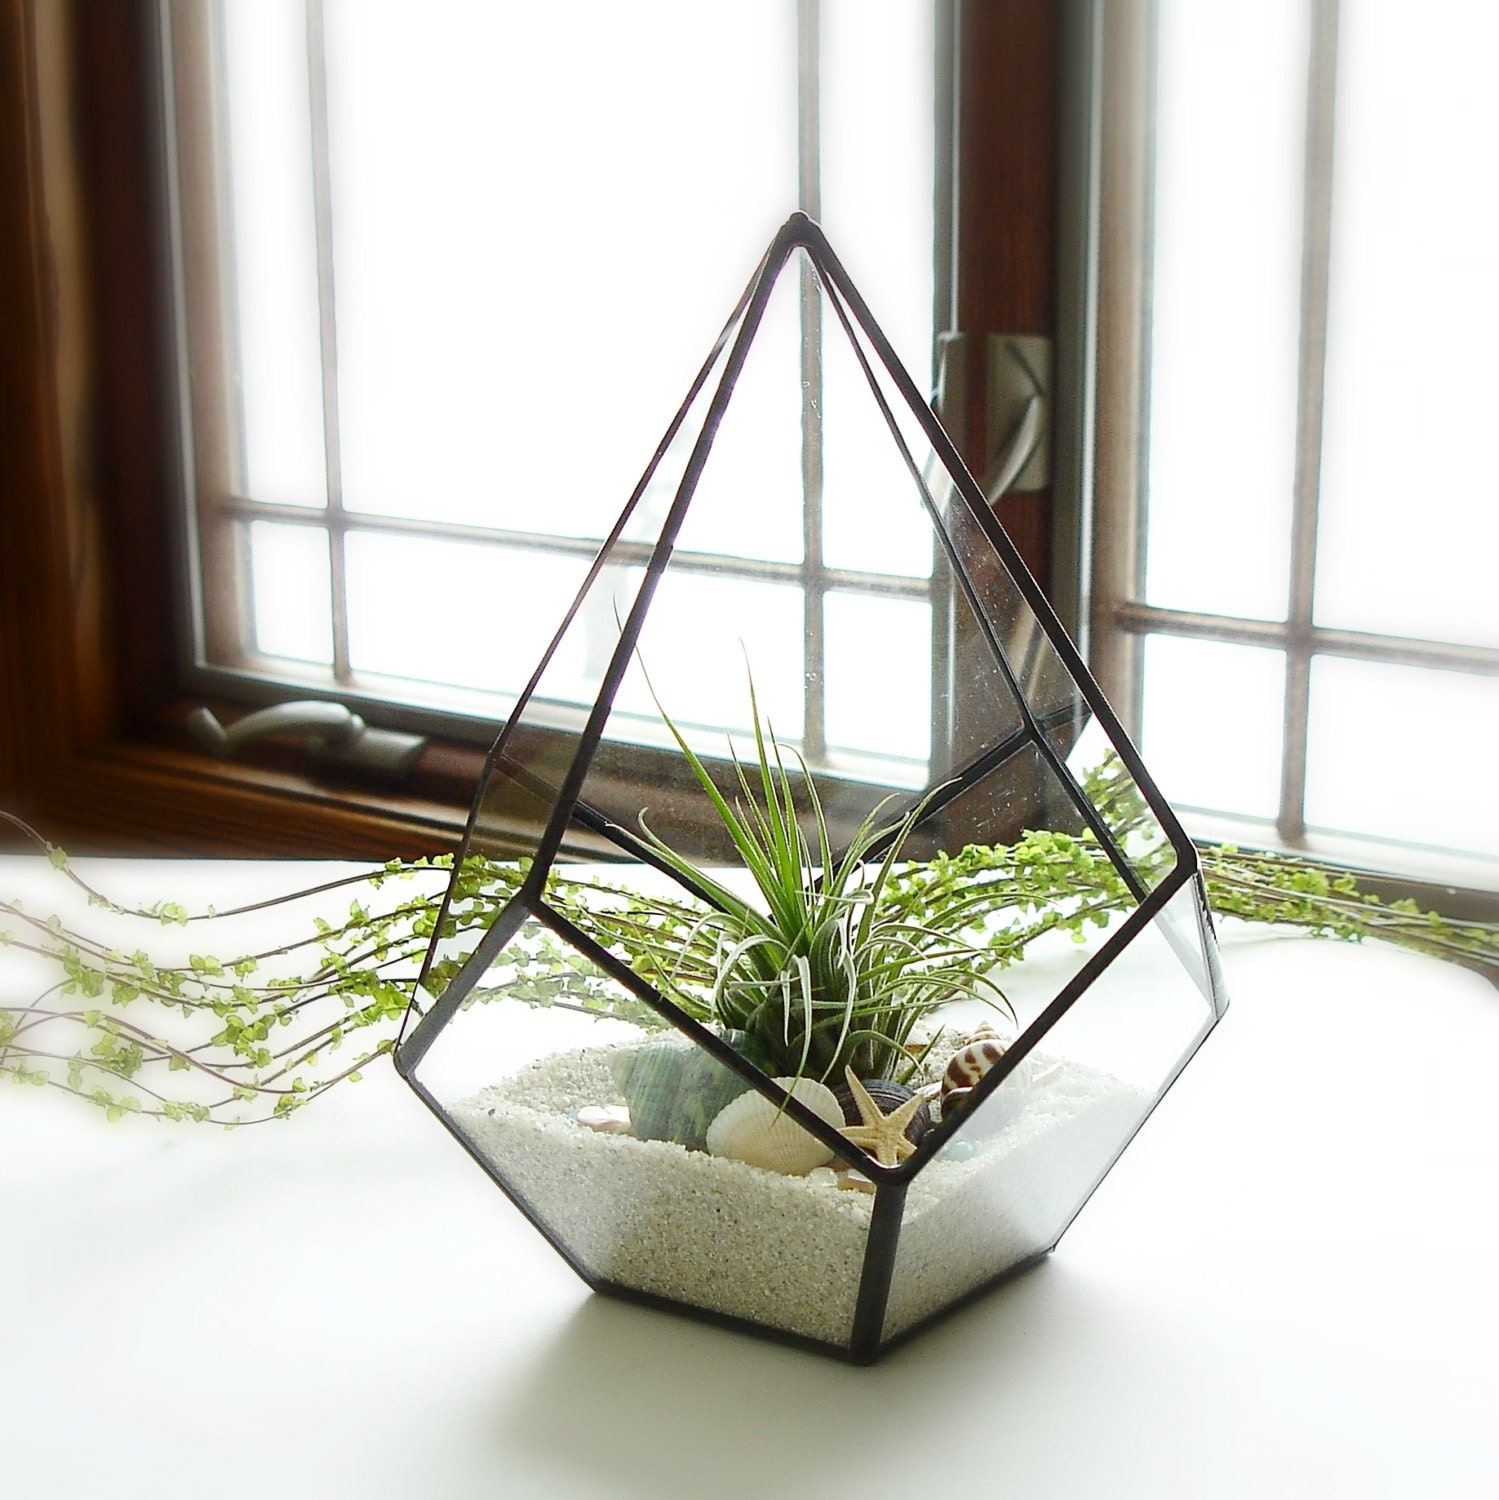 terrariums and ornaments by jechoryglassdesigns on etsy. Black Bedroom Furniture Sets. Home Design Ideas